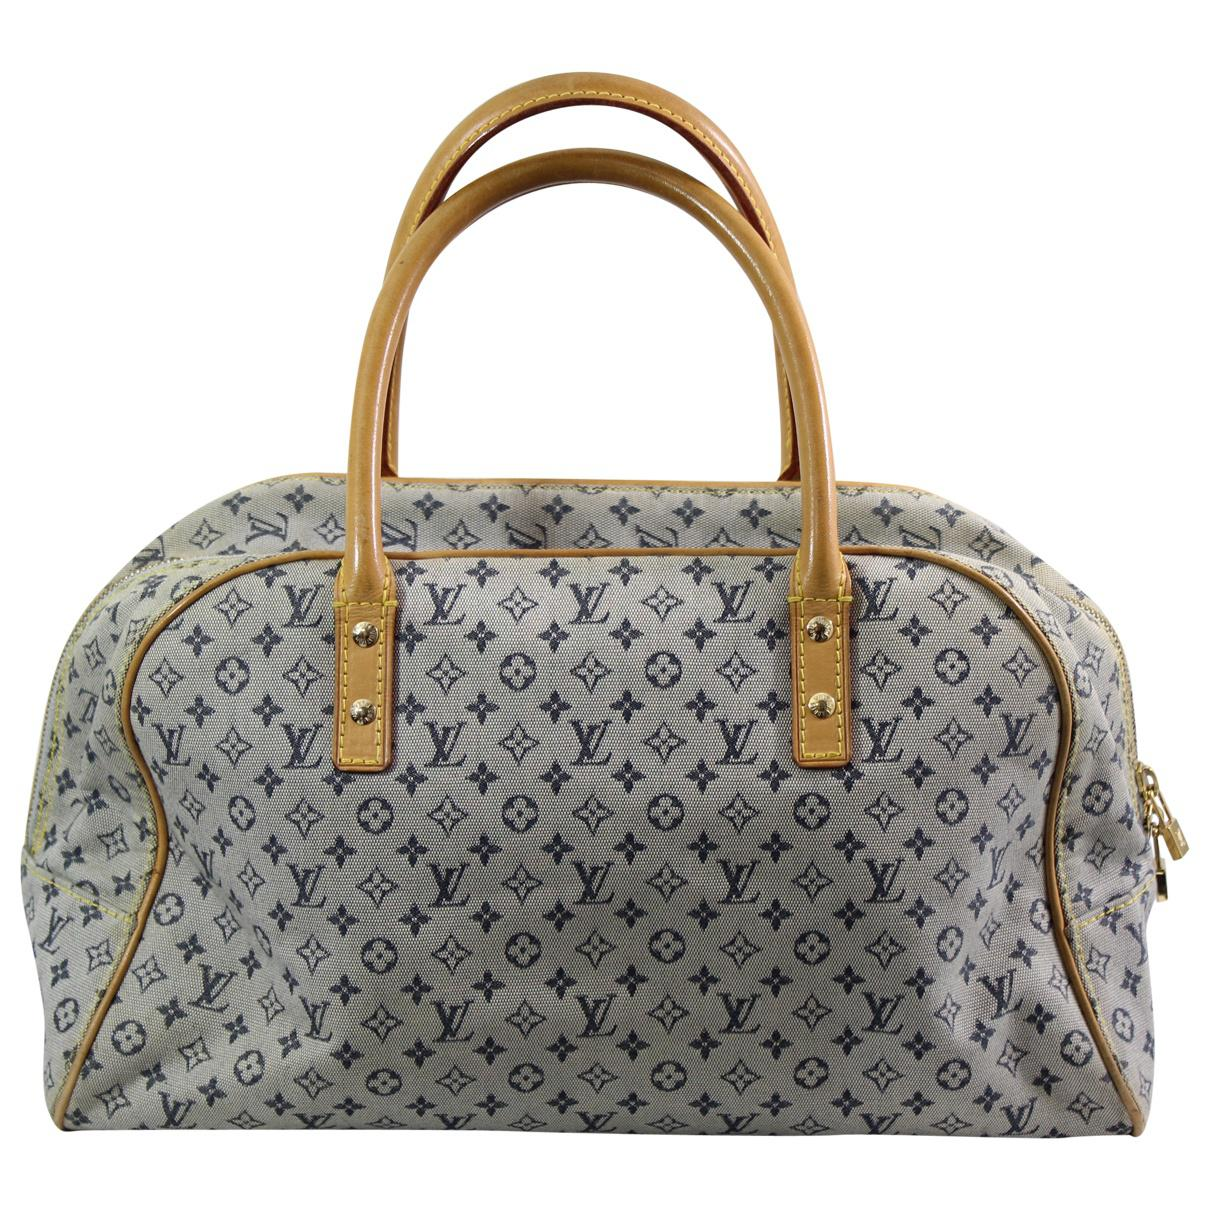 sacs louis vuitton galeries lafayette,sac a main louis